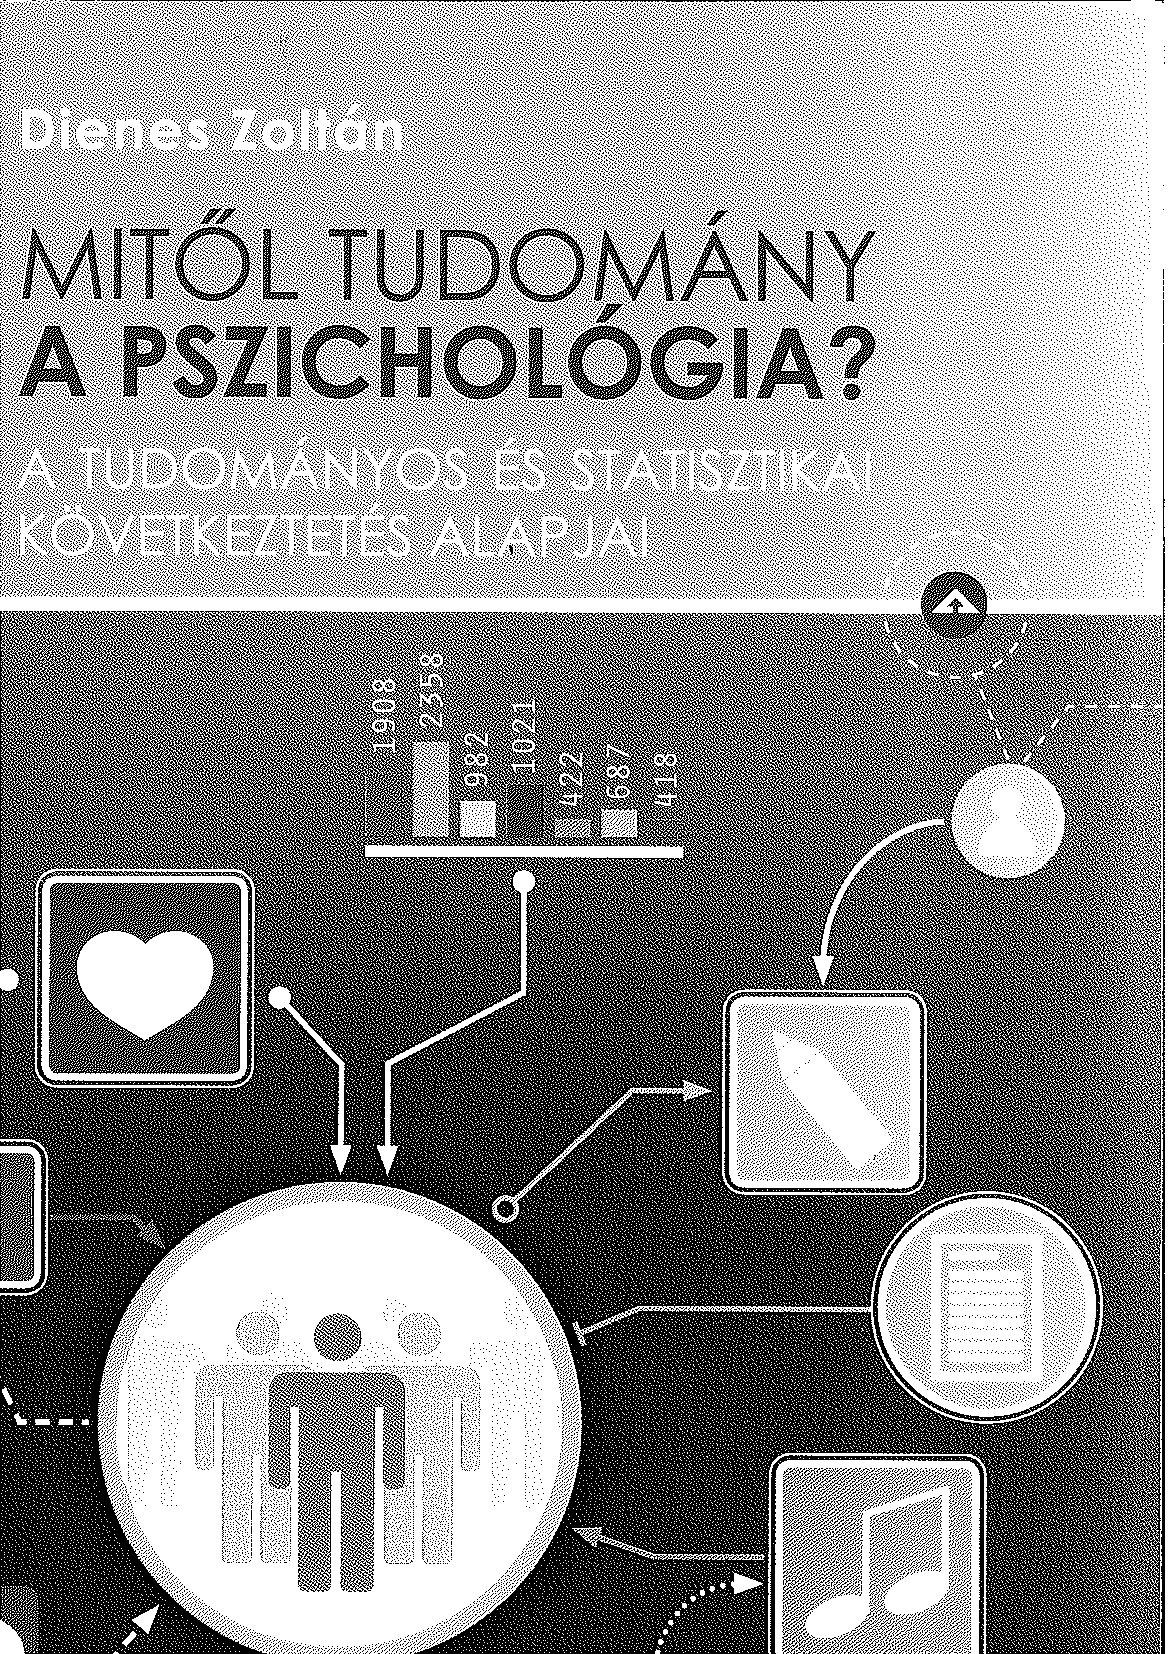 Scientific And Statistical Inference Hungarian Cover